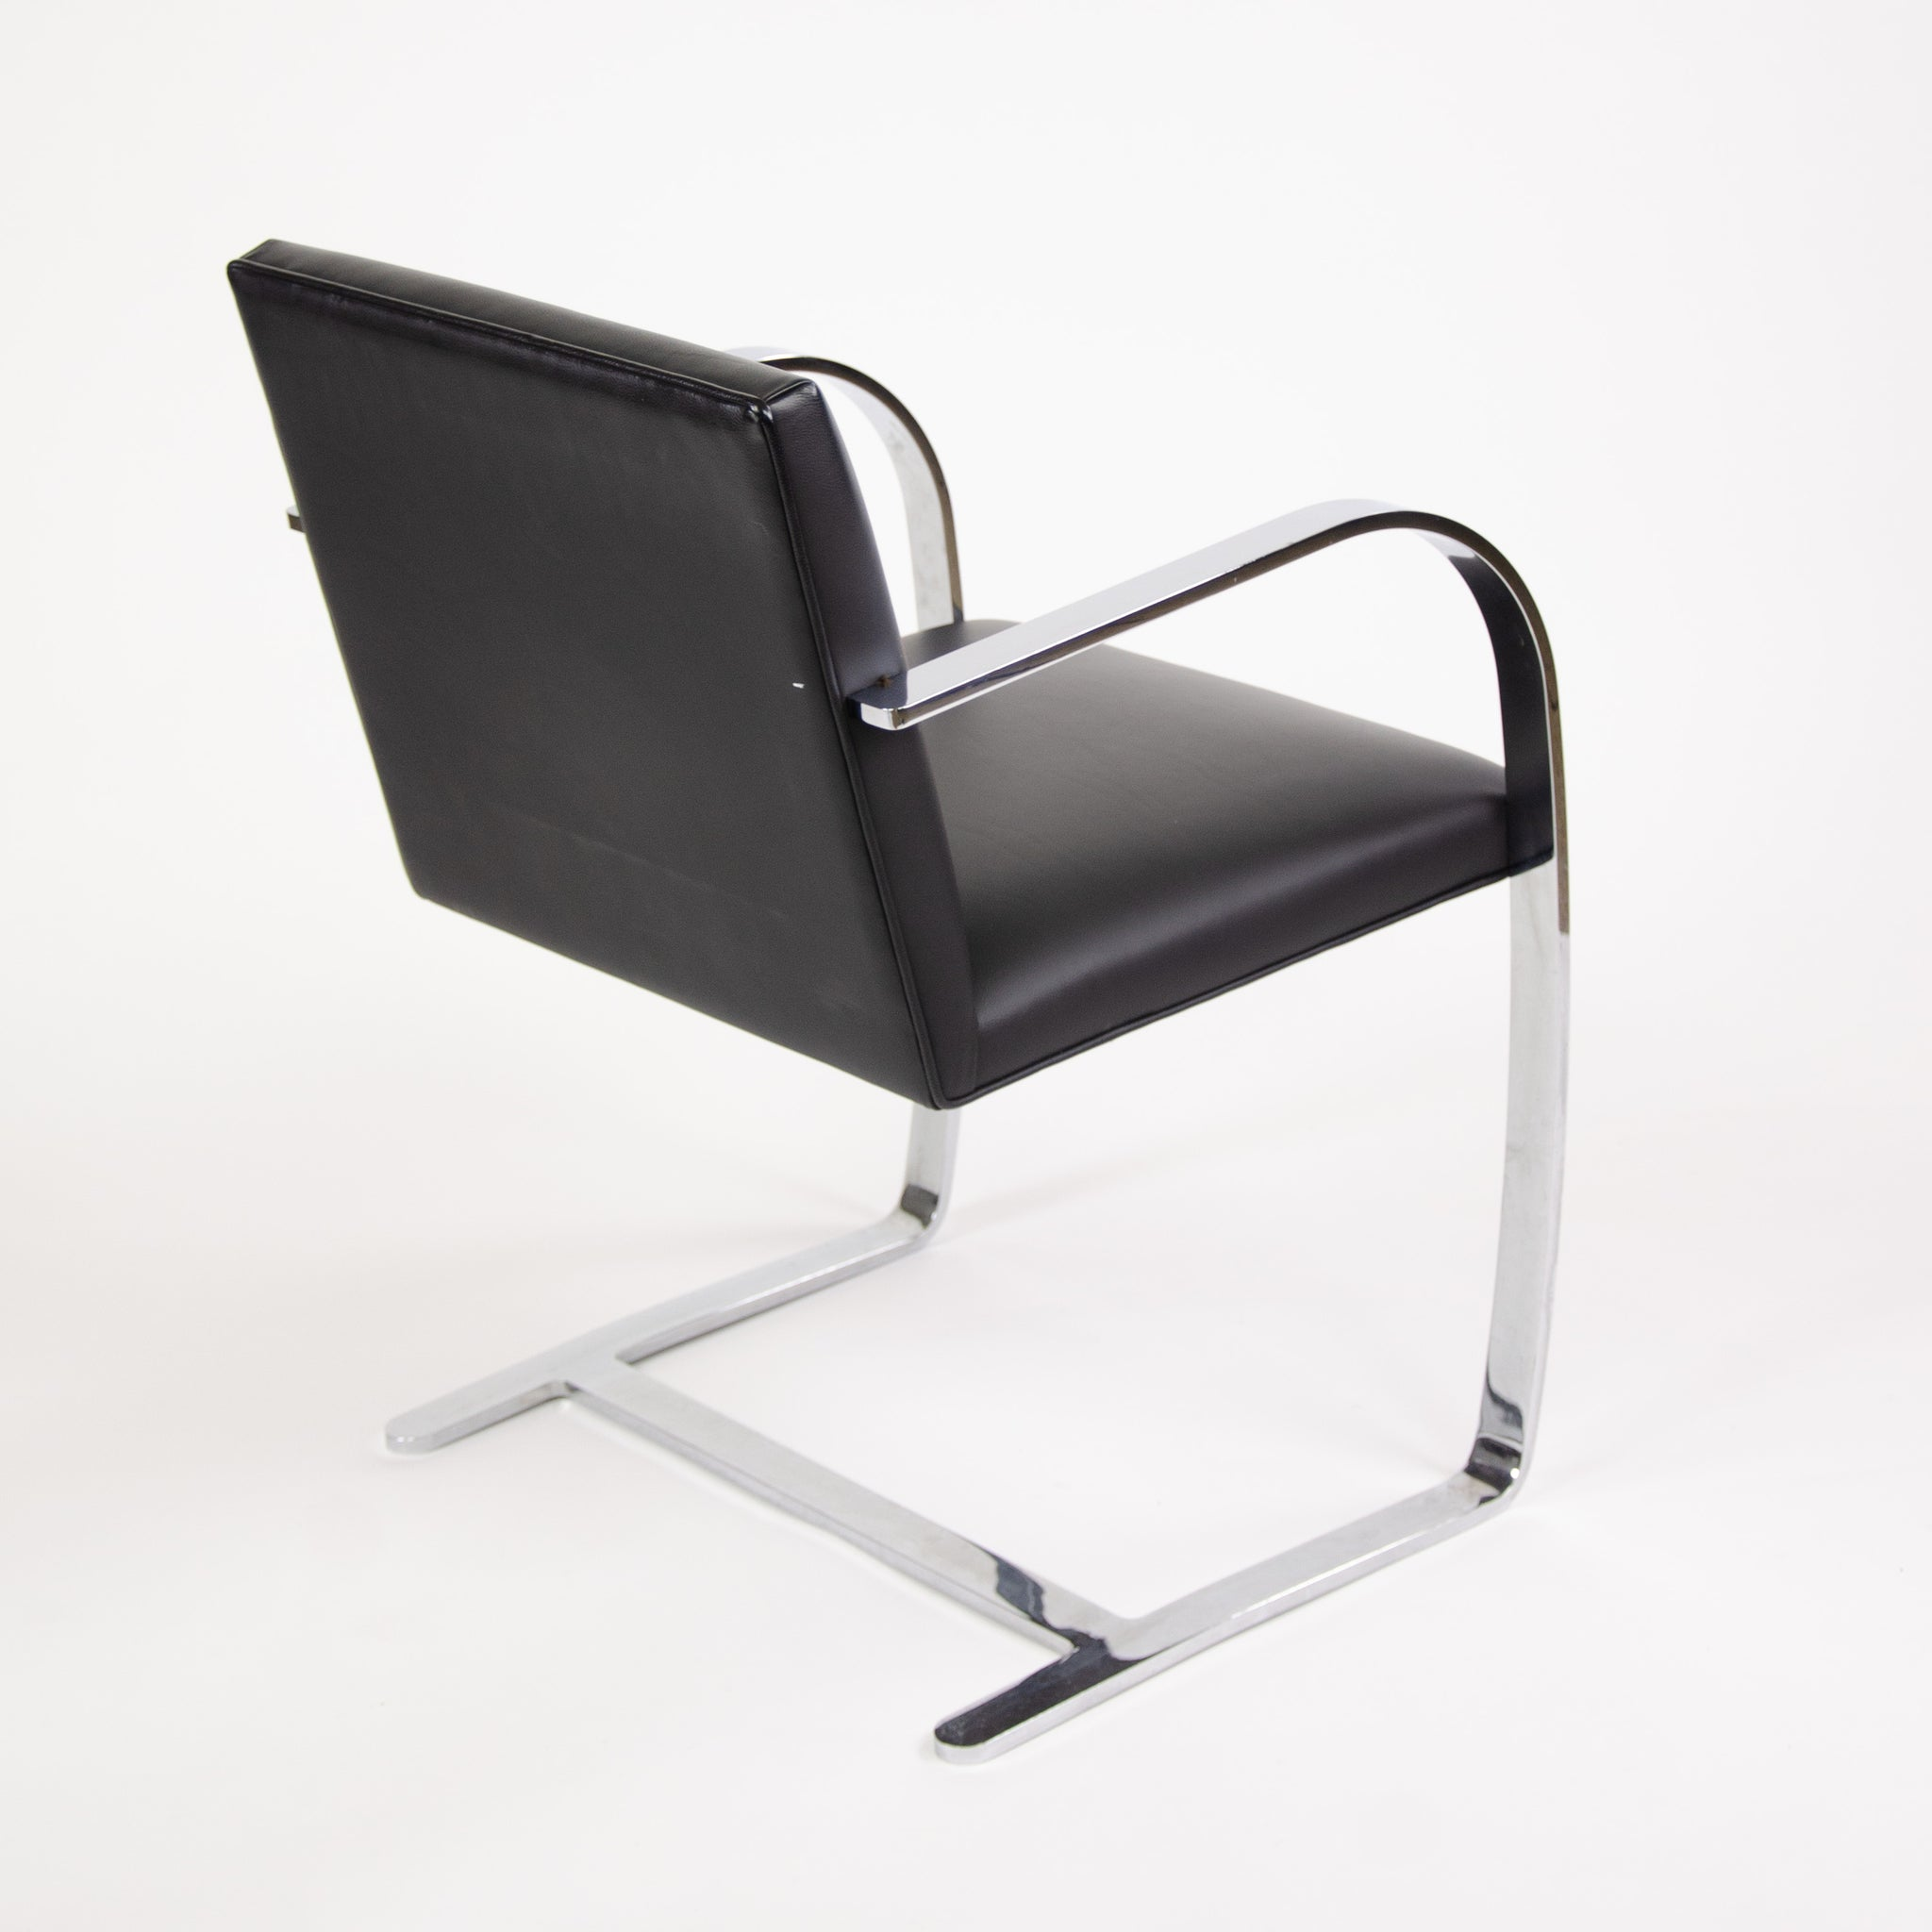 Knoll STAINLESS Mies Van Der Rohe Brno Chairs Black Leather Sets Available 2000s MINT